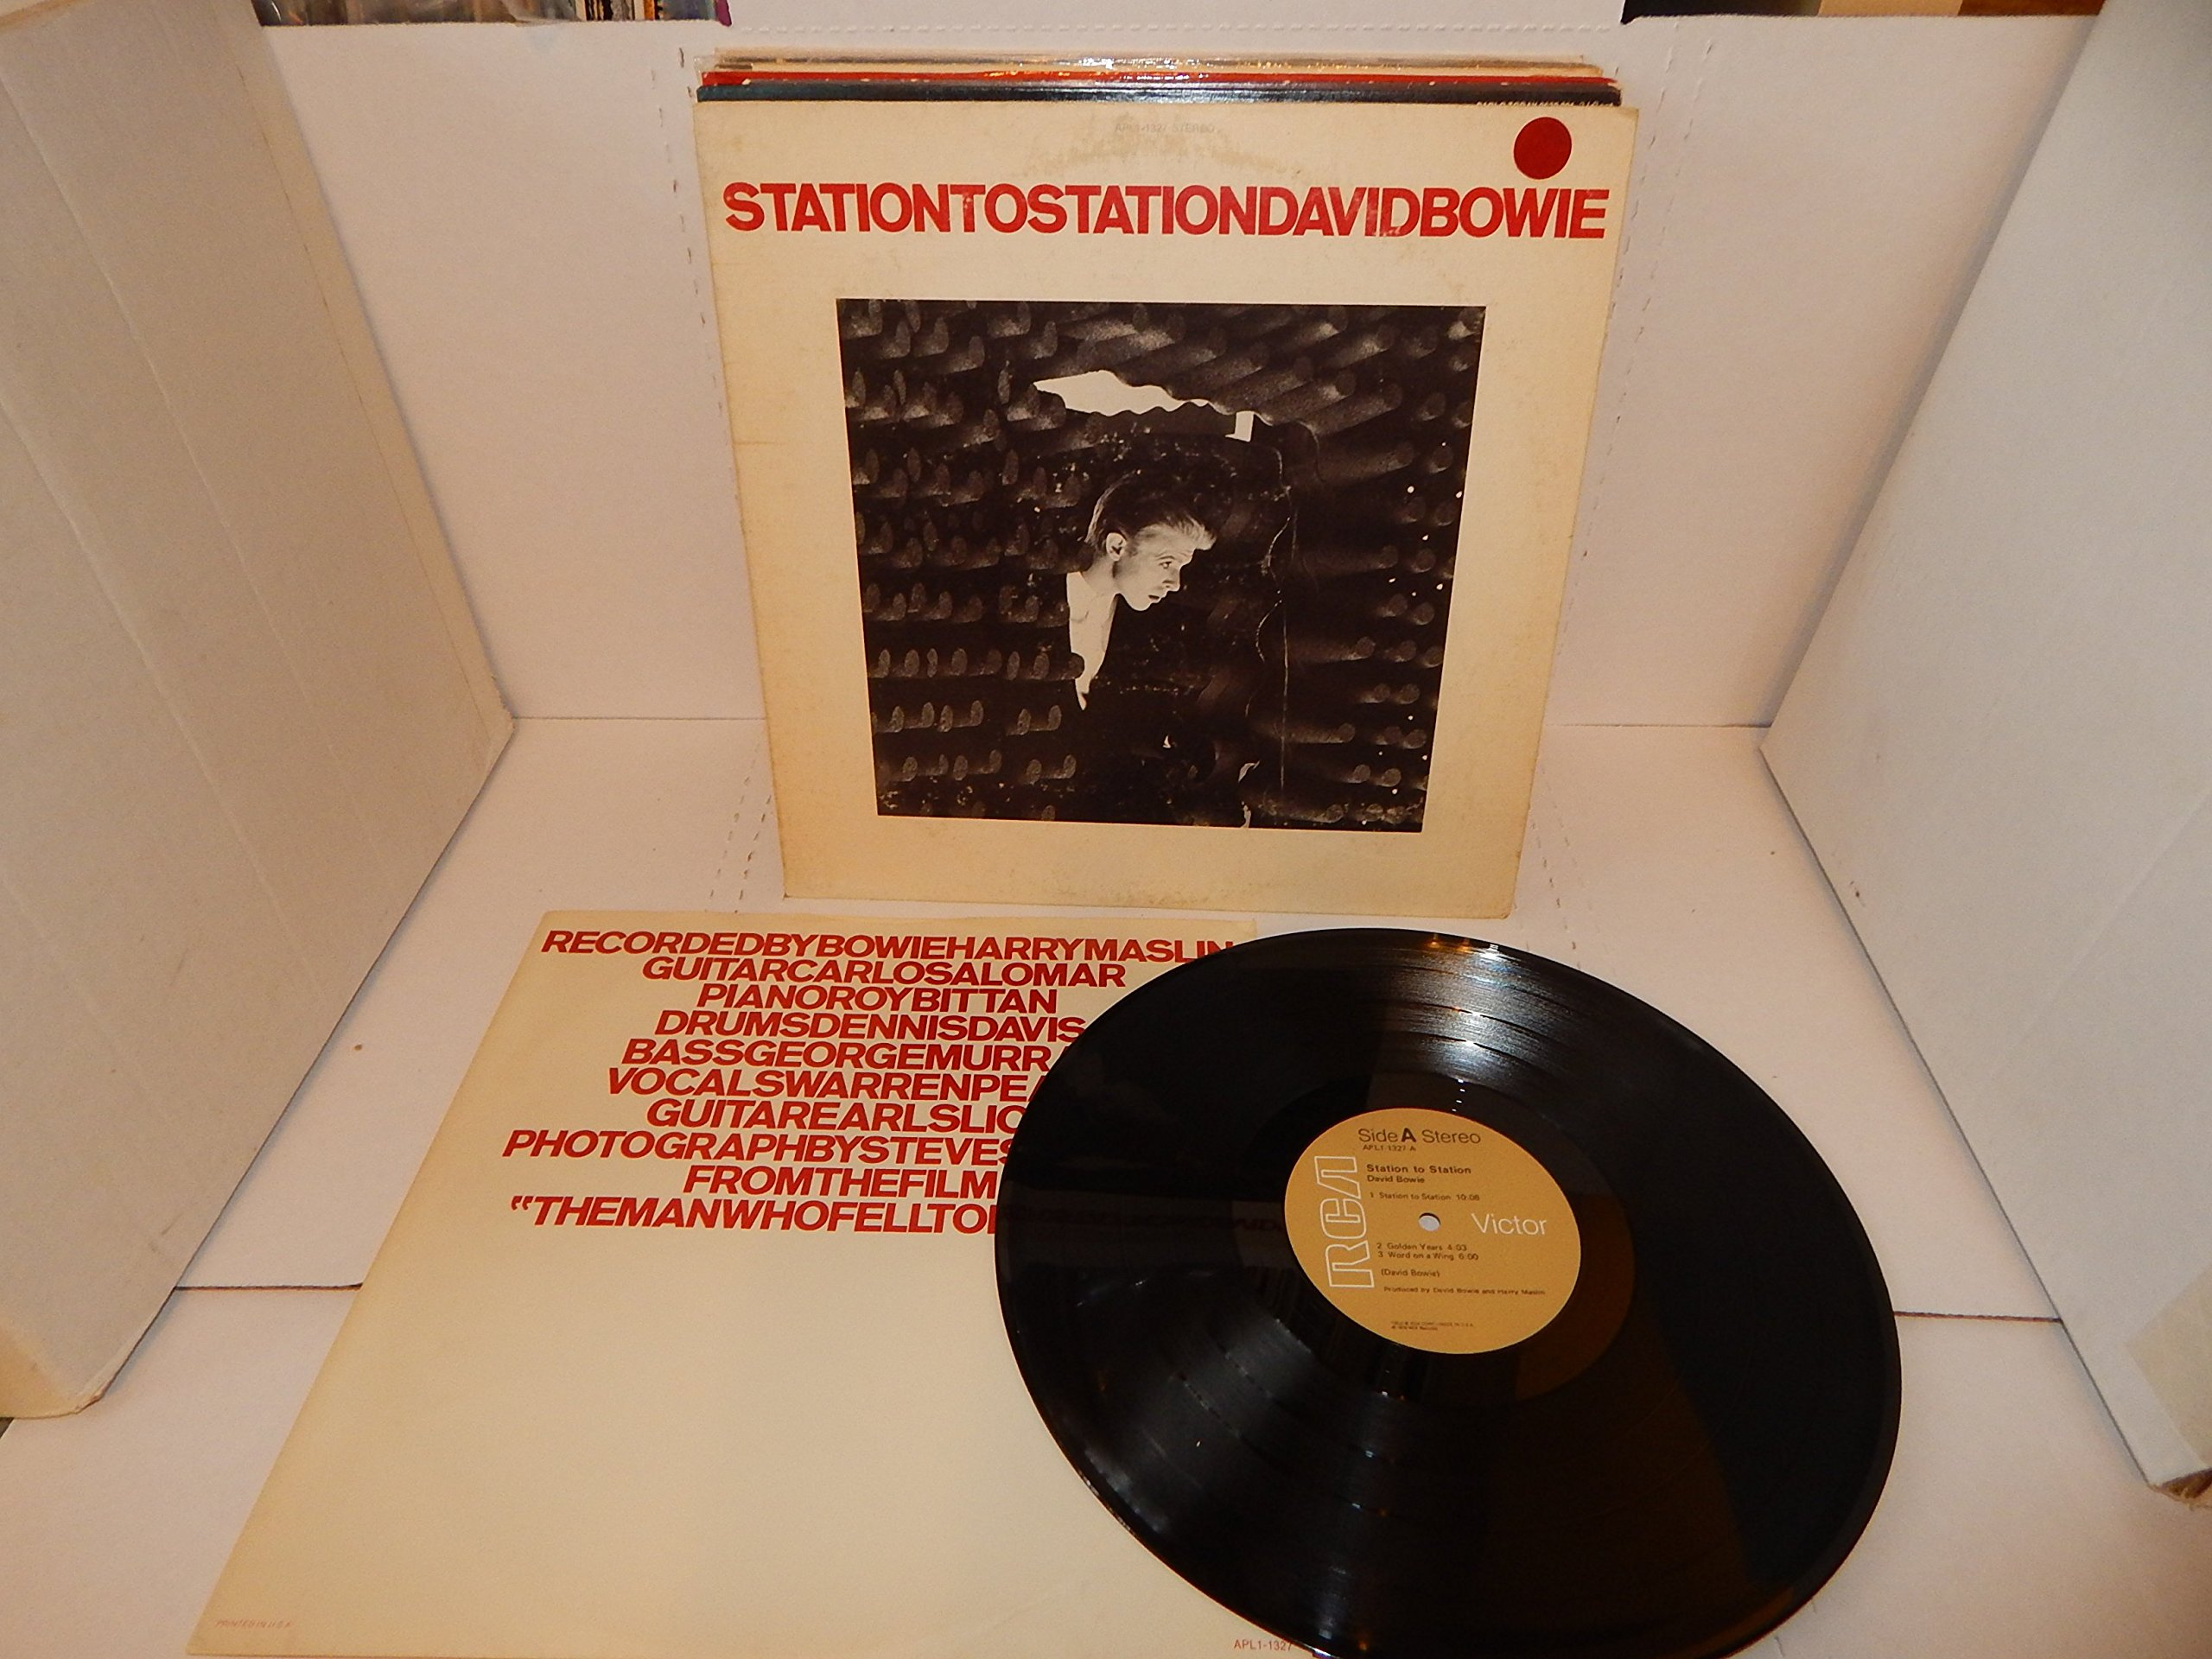 Station to Station (USA vinyl LP) by RCA